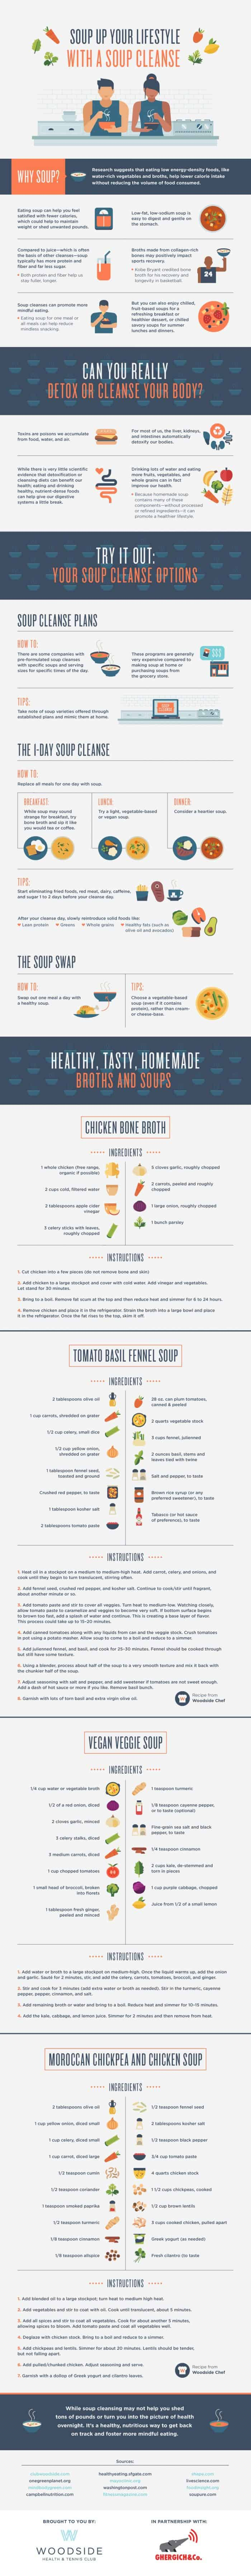 Change Up Your Diet With A Soup-Filled Cleanse